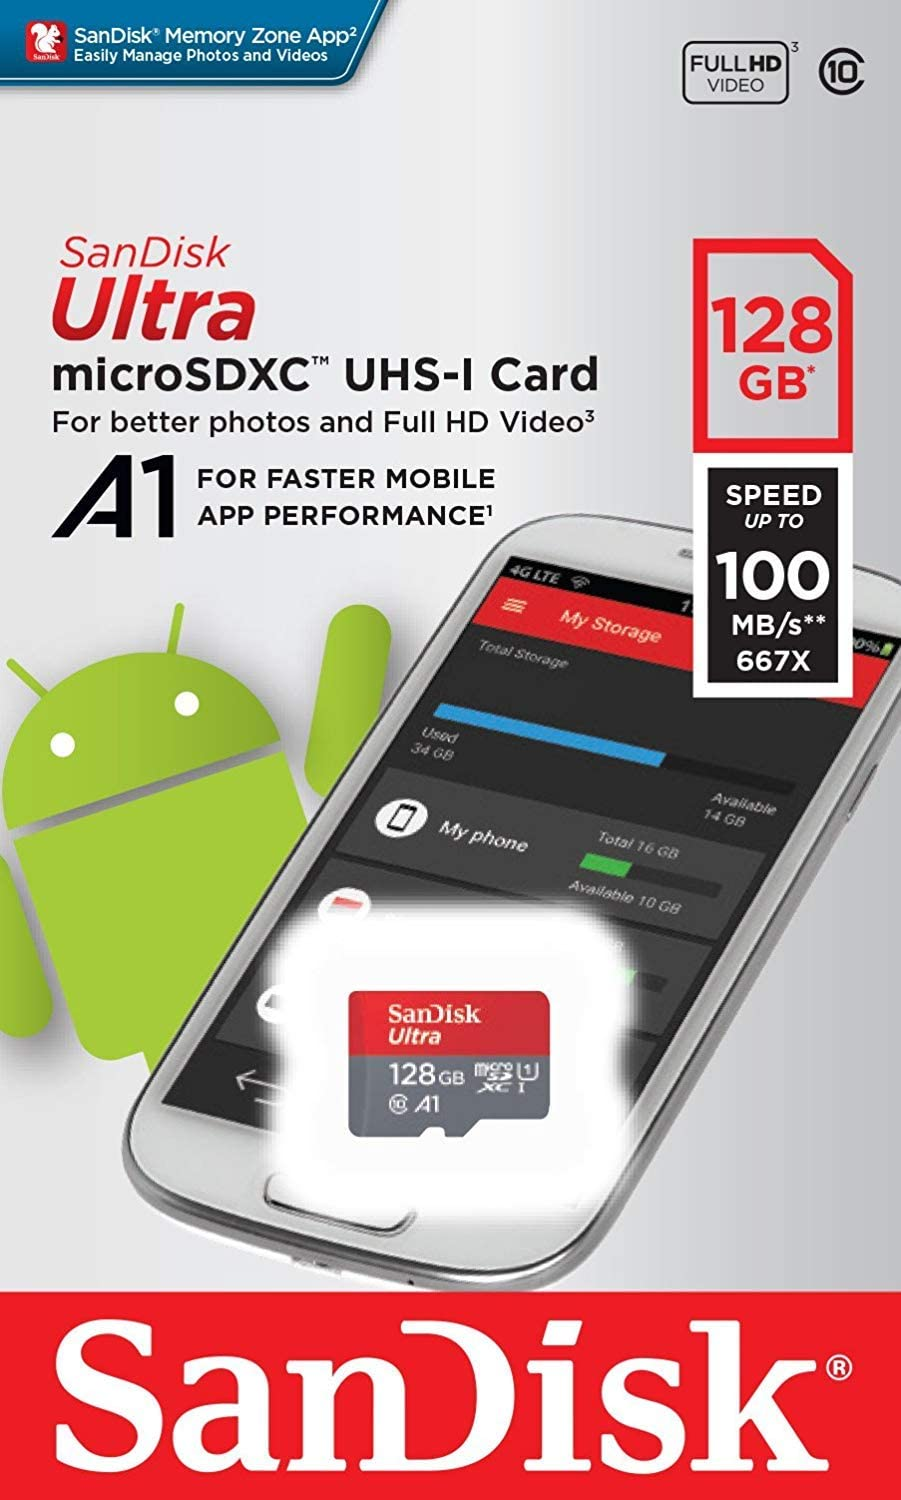 SanDisk Ultra 128GB MicroSDXC Verified for Samsung Convoy 4 by SanFlash 100MBs A1 U1 C10 Works with SanDisk